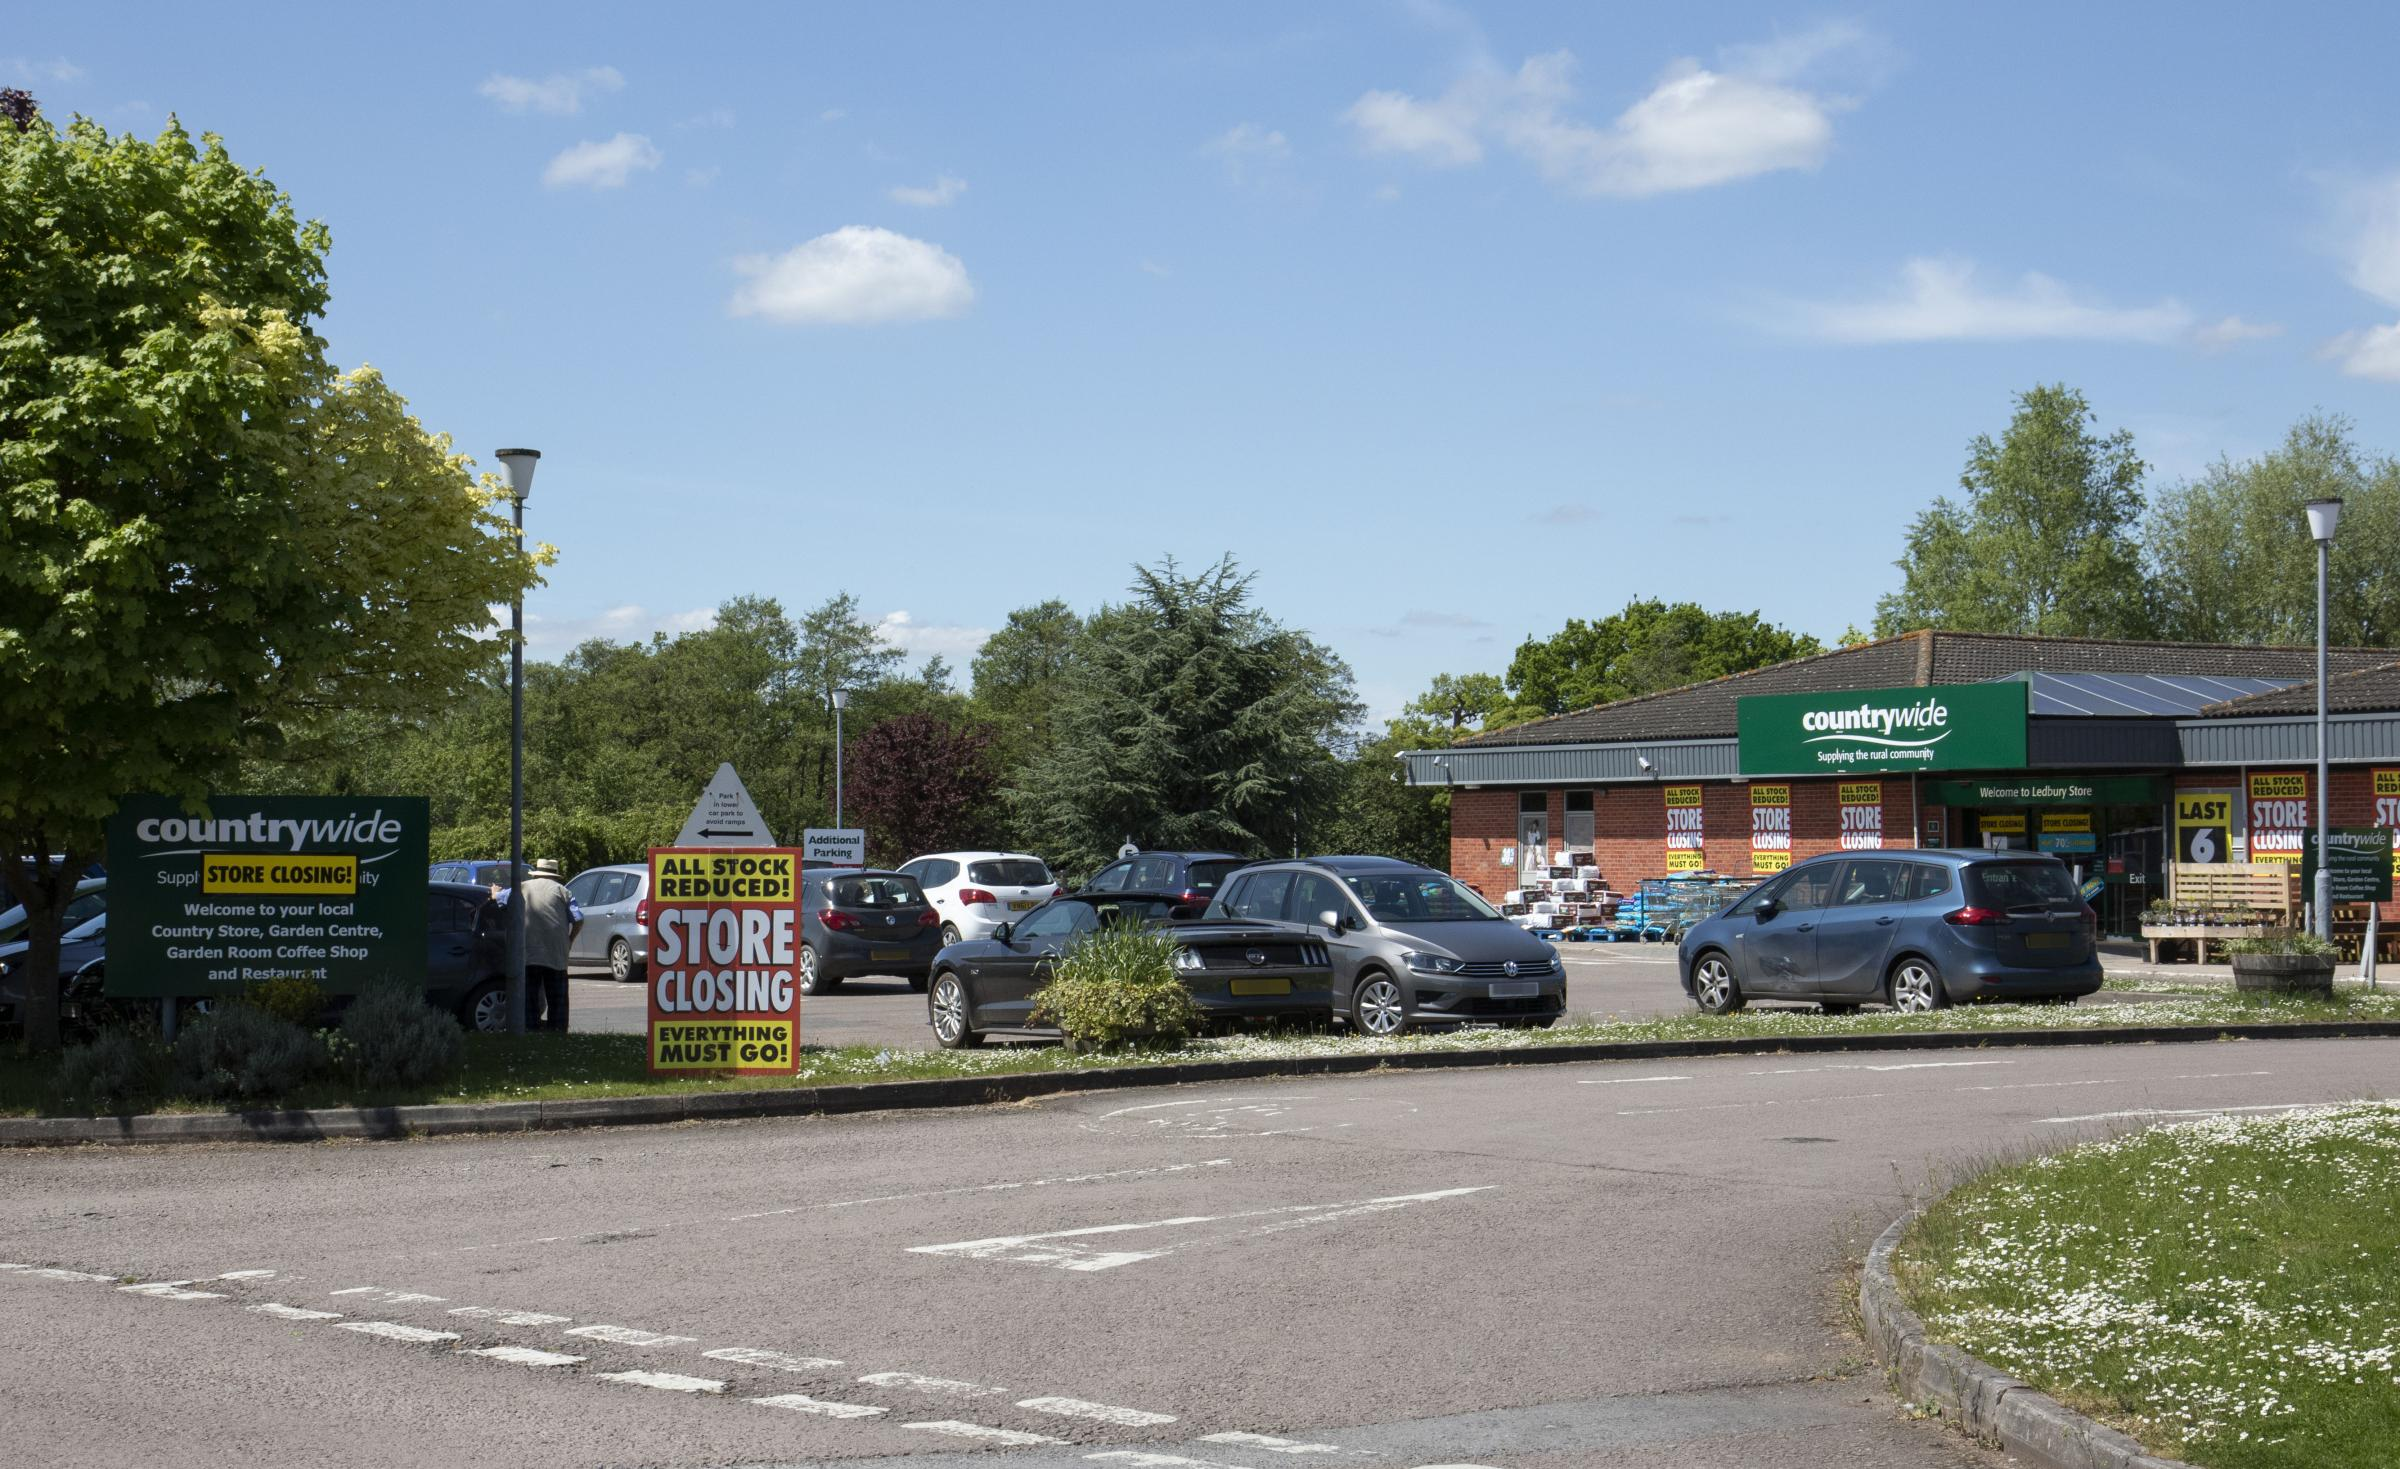 CLOSING: Ledbury's Countrywide store